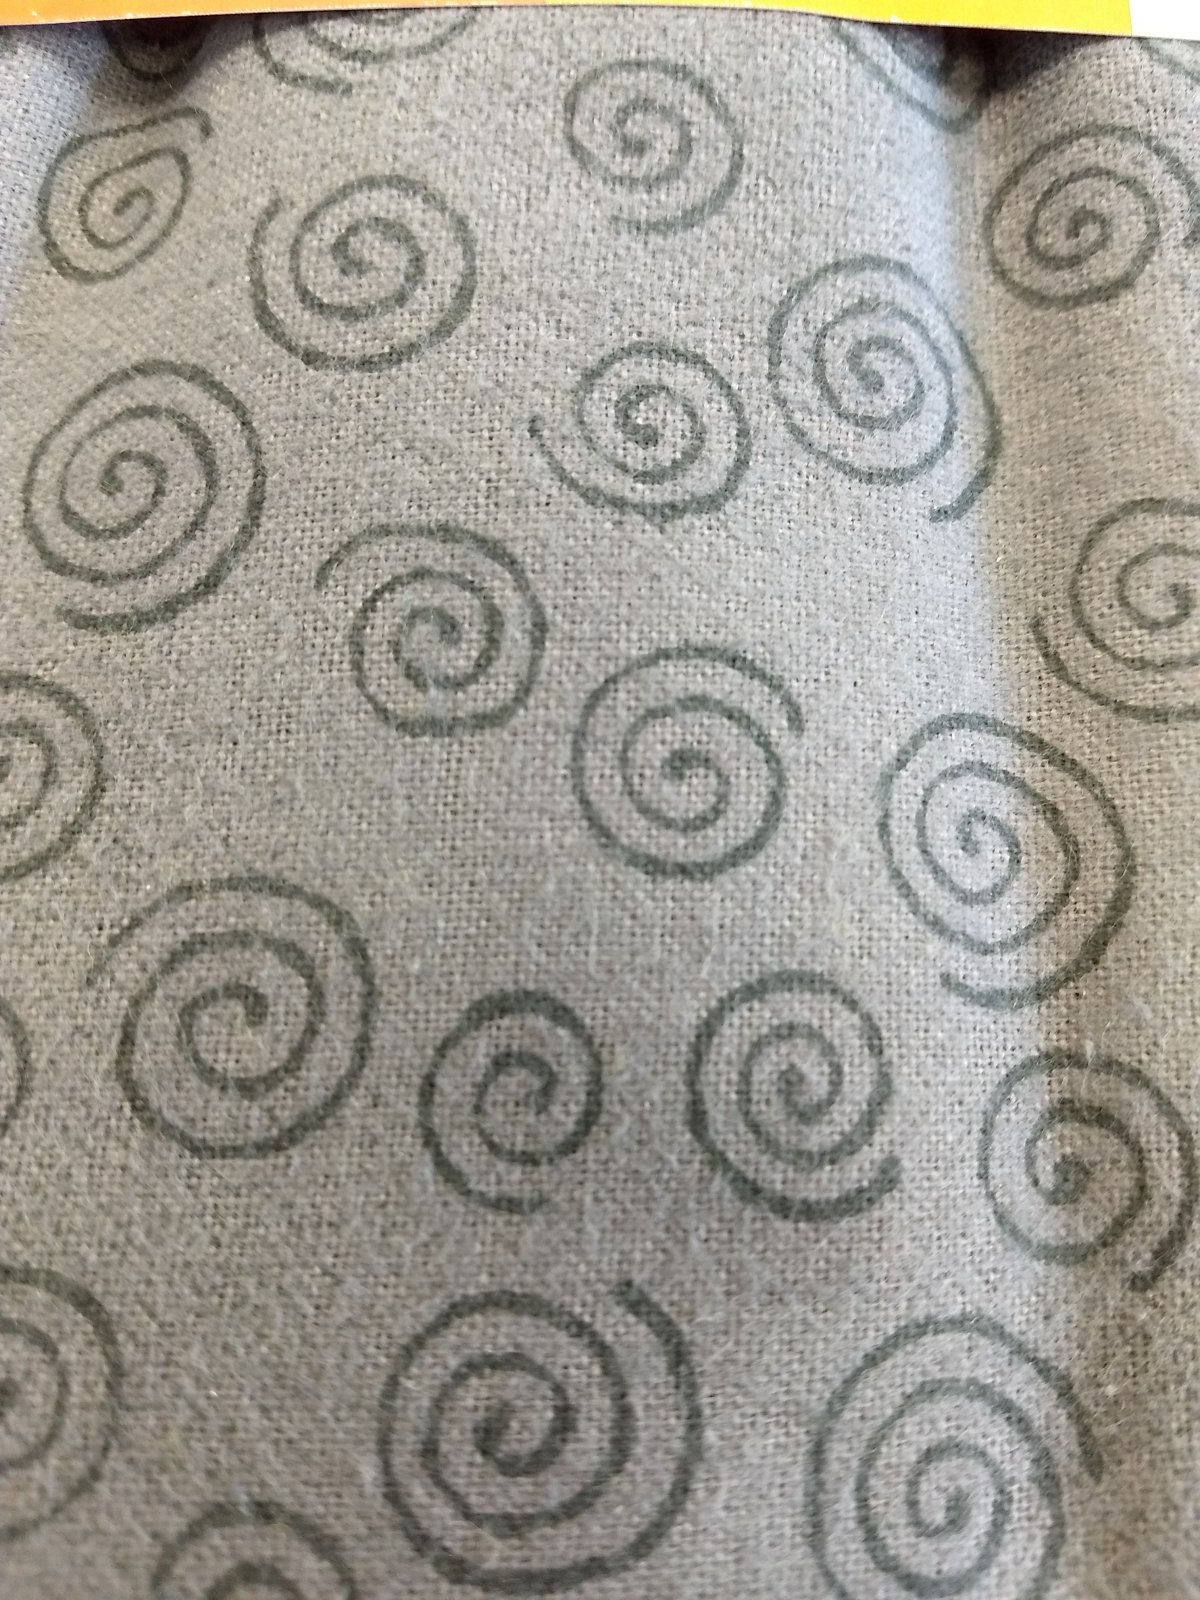 110 Flannel - 3yd cut - Swirls Charcoal